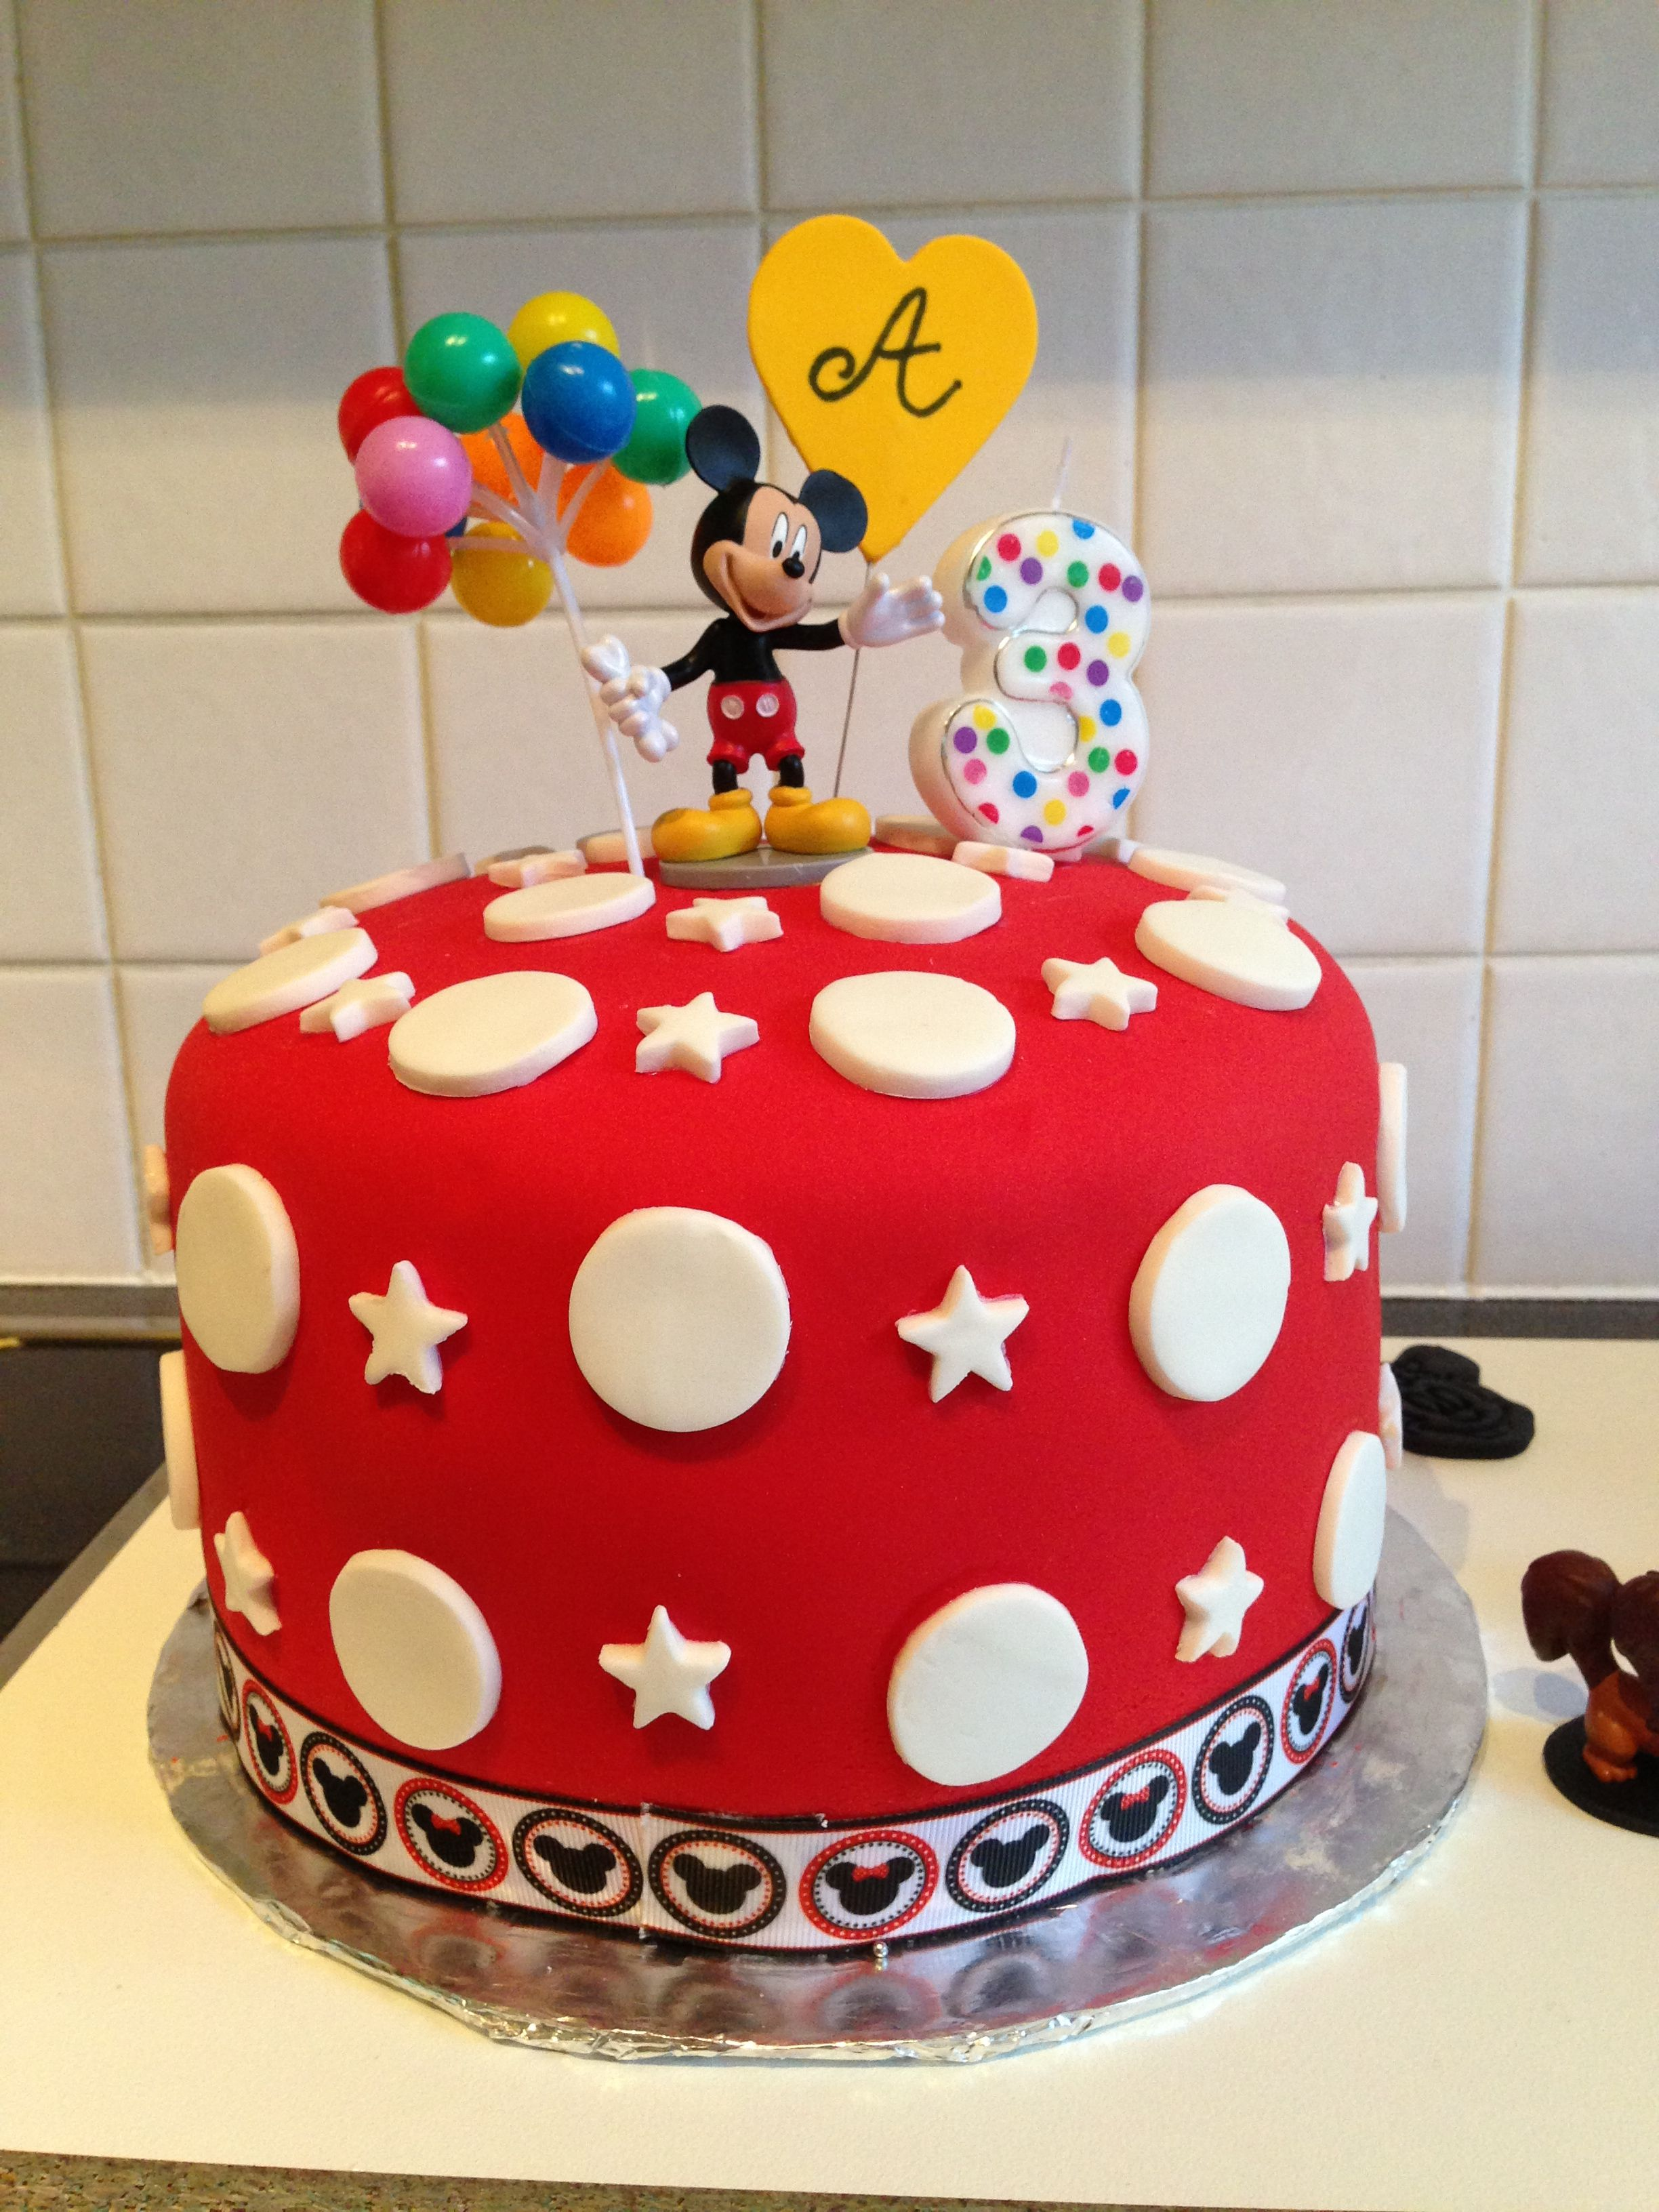 Swell Easy Diy Mickey Mouse Cake Mickey Mouse Cake Simple Birthday Funny Birthday Cards Online Hendilapandamsfinfo